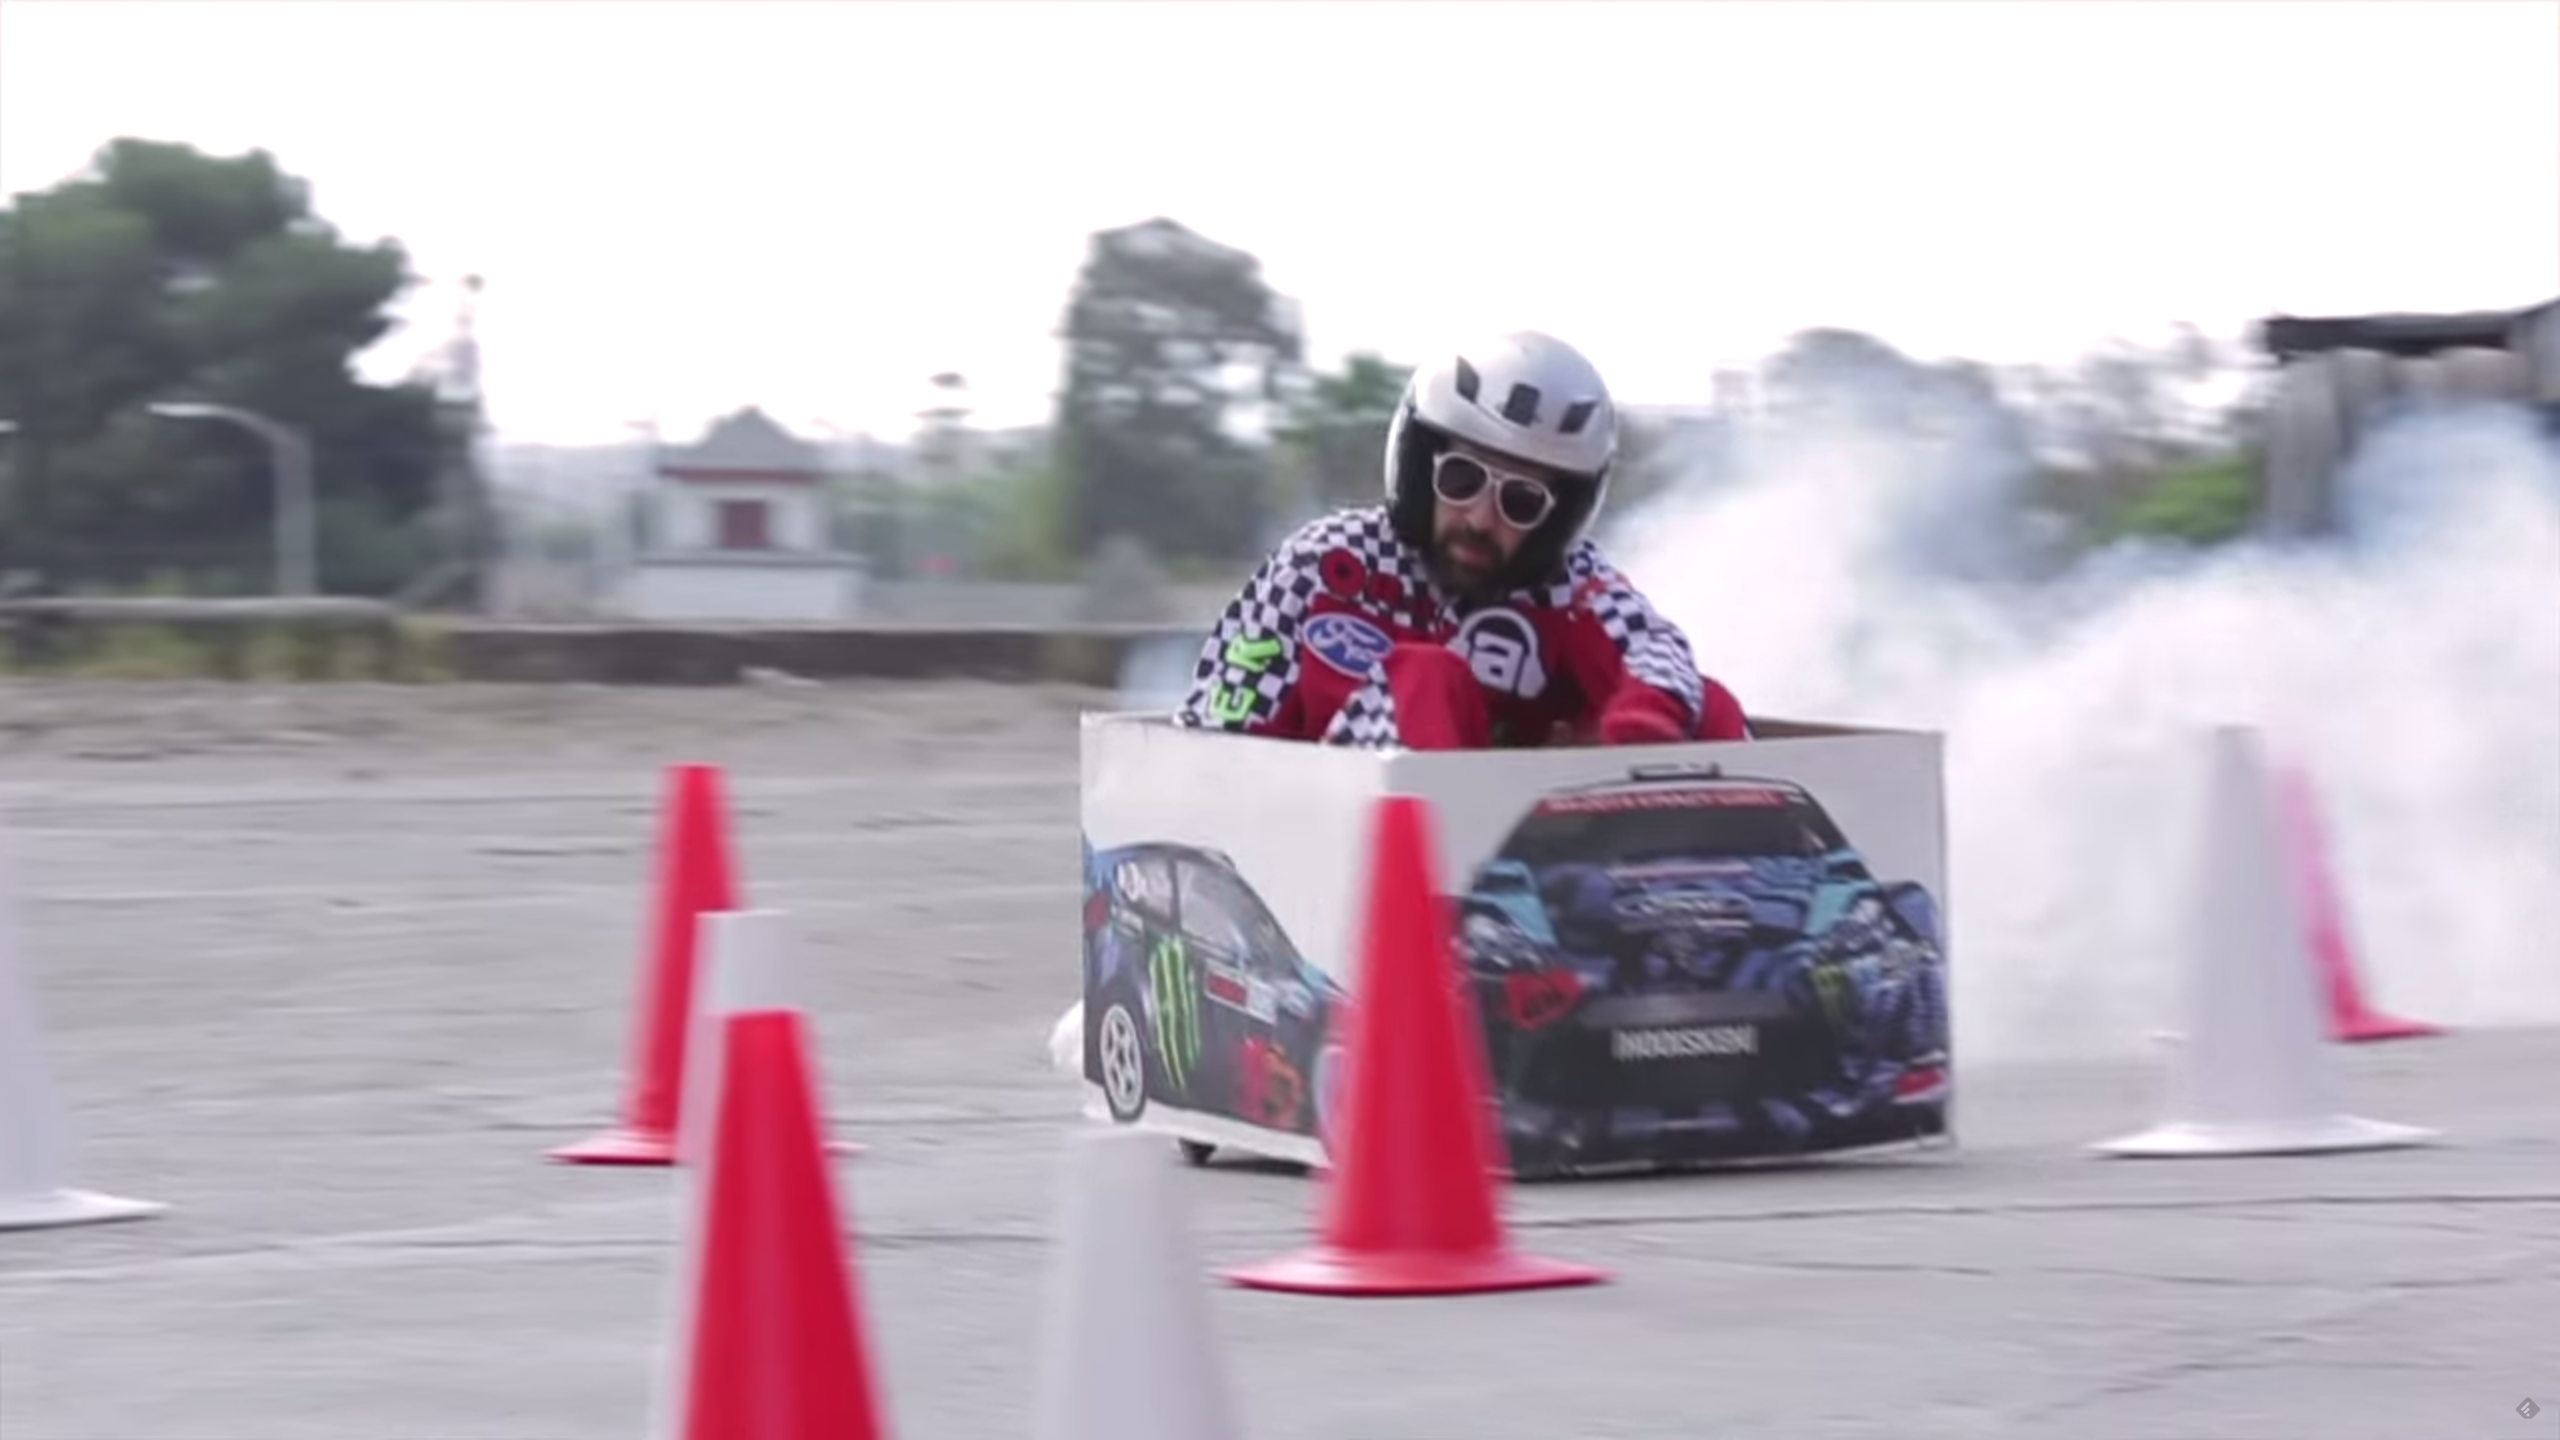 Ken Box is back with more Crazy Cart gymkhana